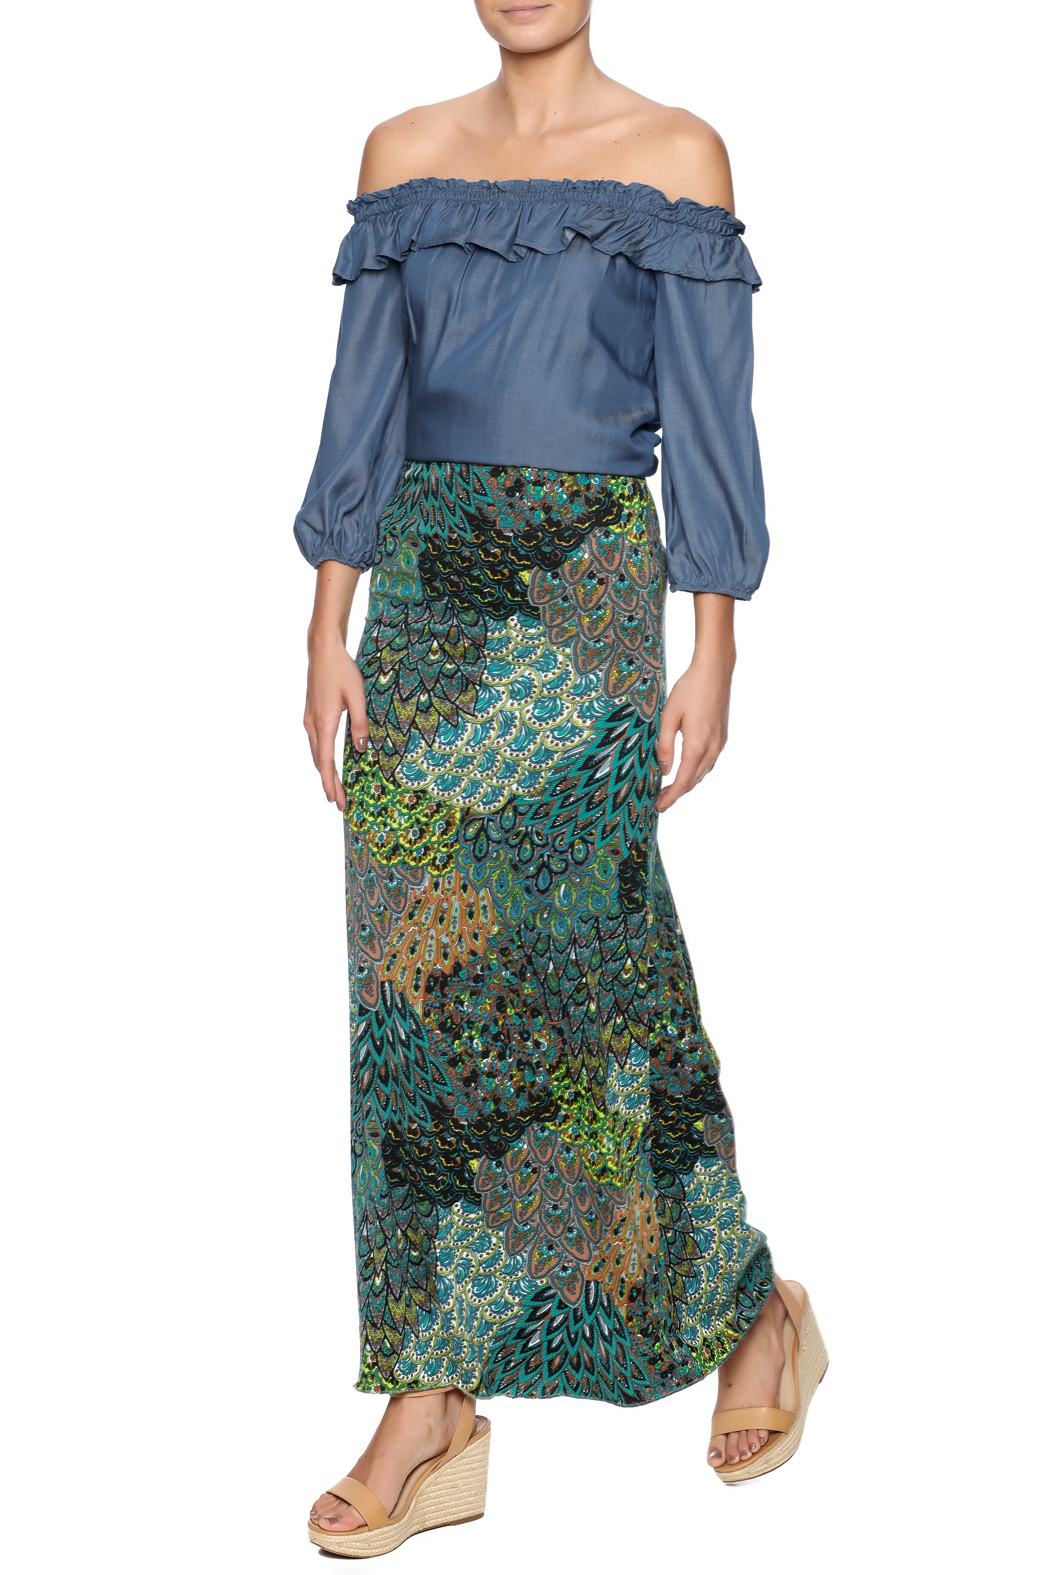 skirtsrule teal peacock maxi skirt from minnesota by